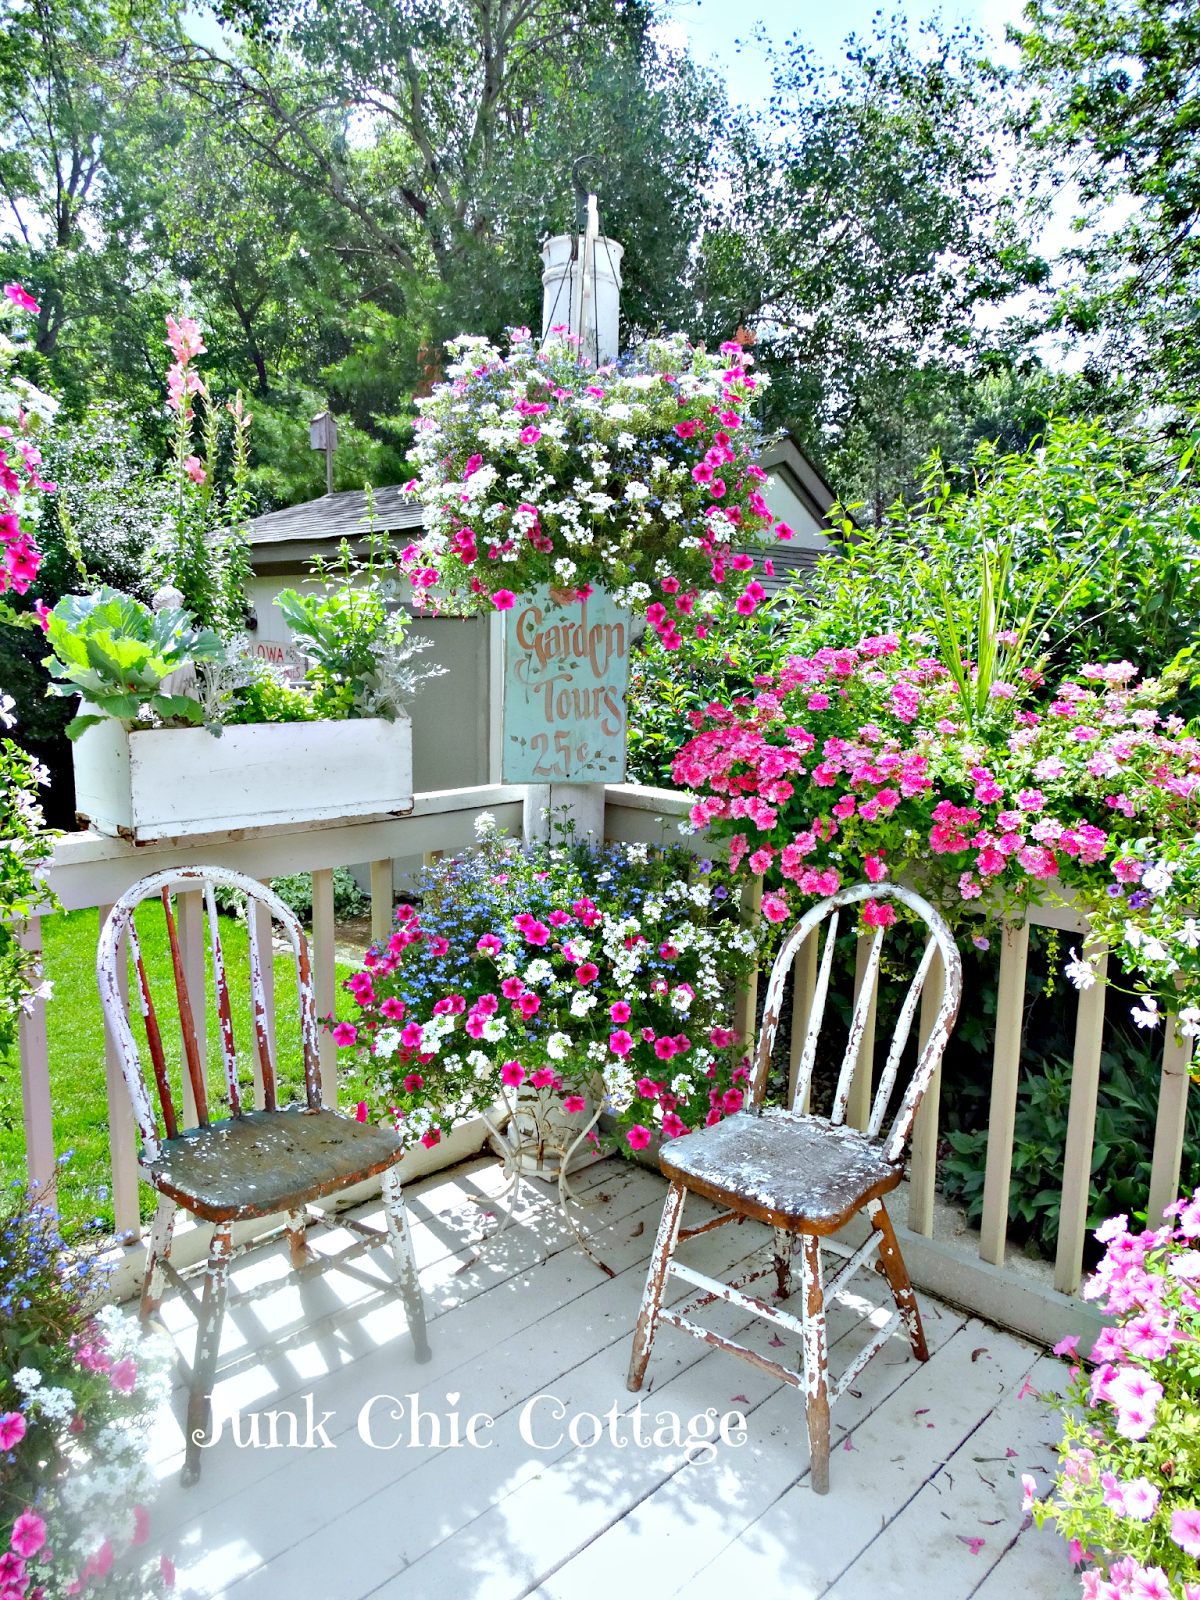 Junk Chic Cottage: Garden Sanctuary And New Lounge Chair